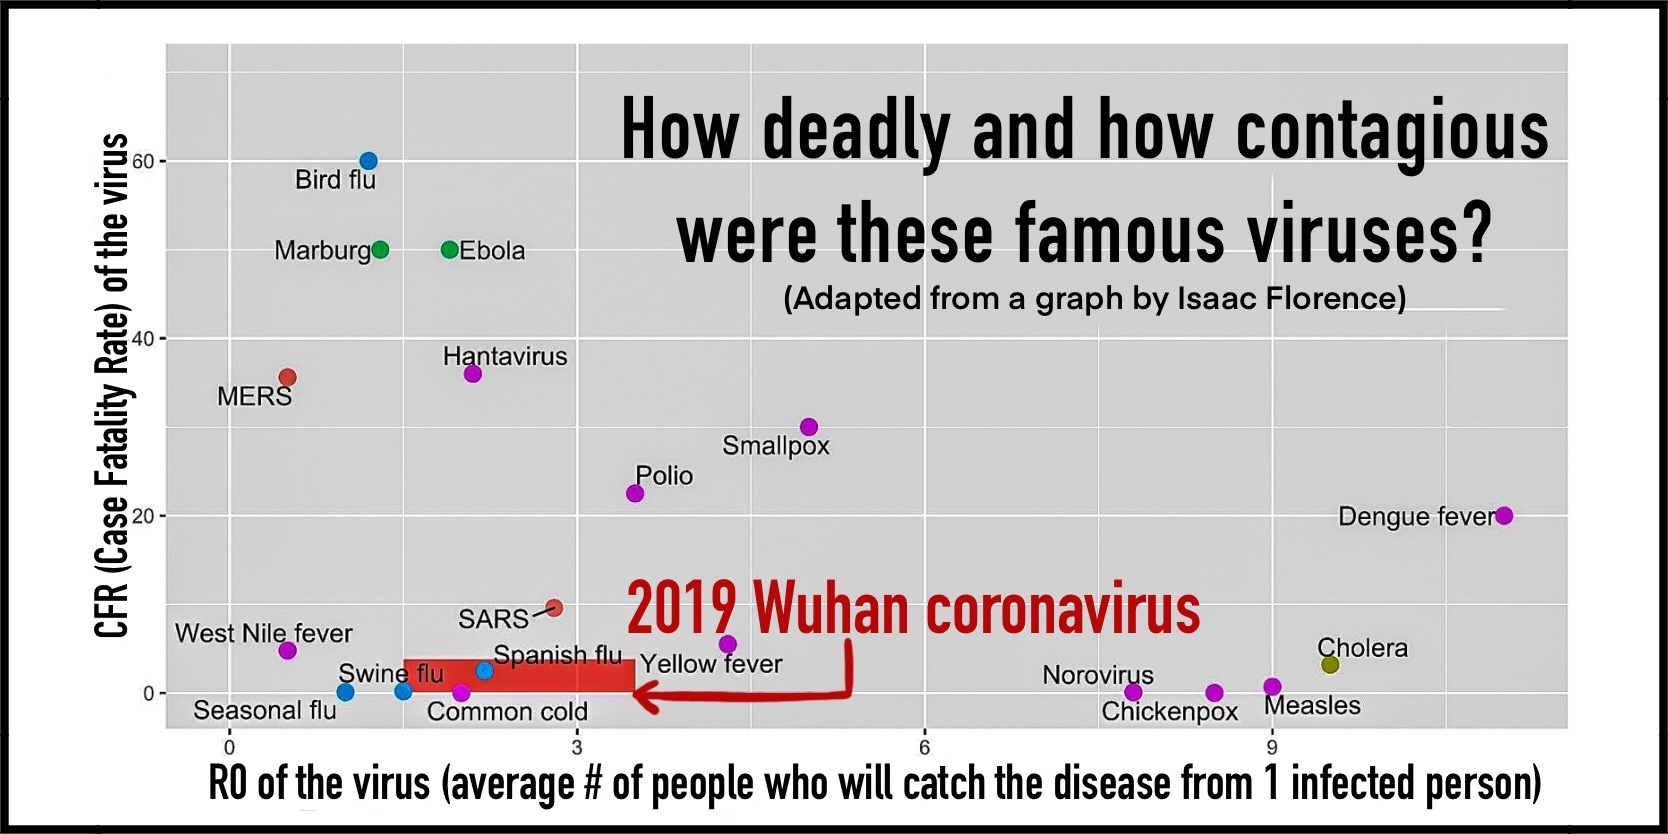 Case Fatality Rate (CFR) and R0 of the Novel Coronavirus 2019 compared